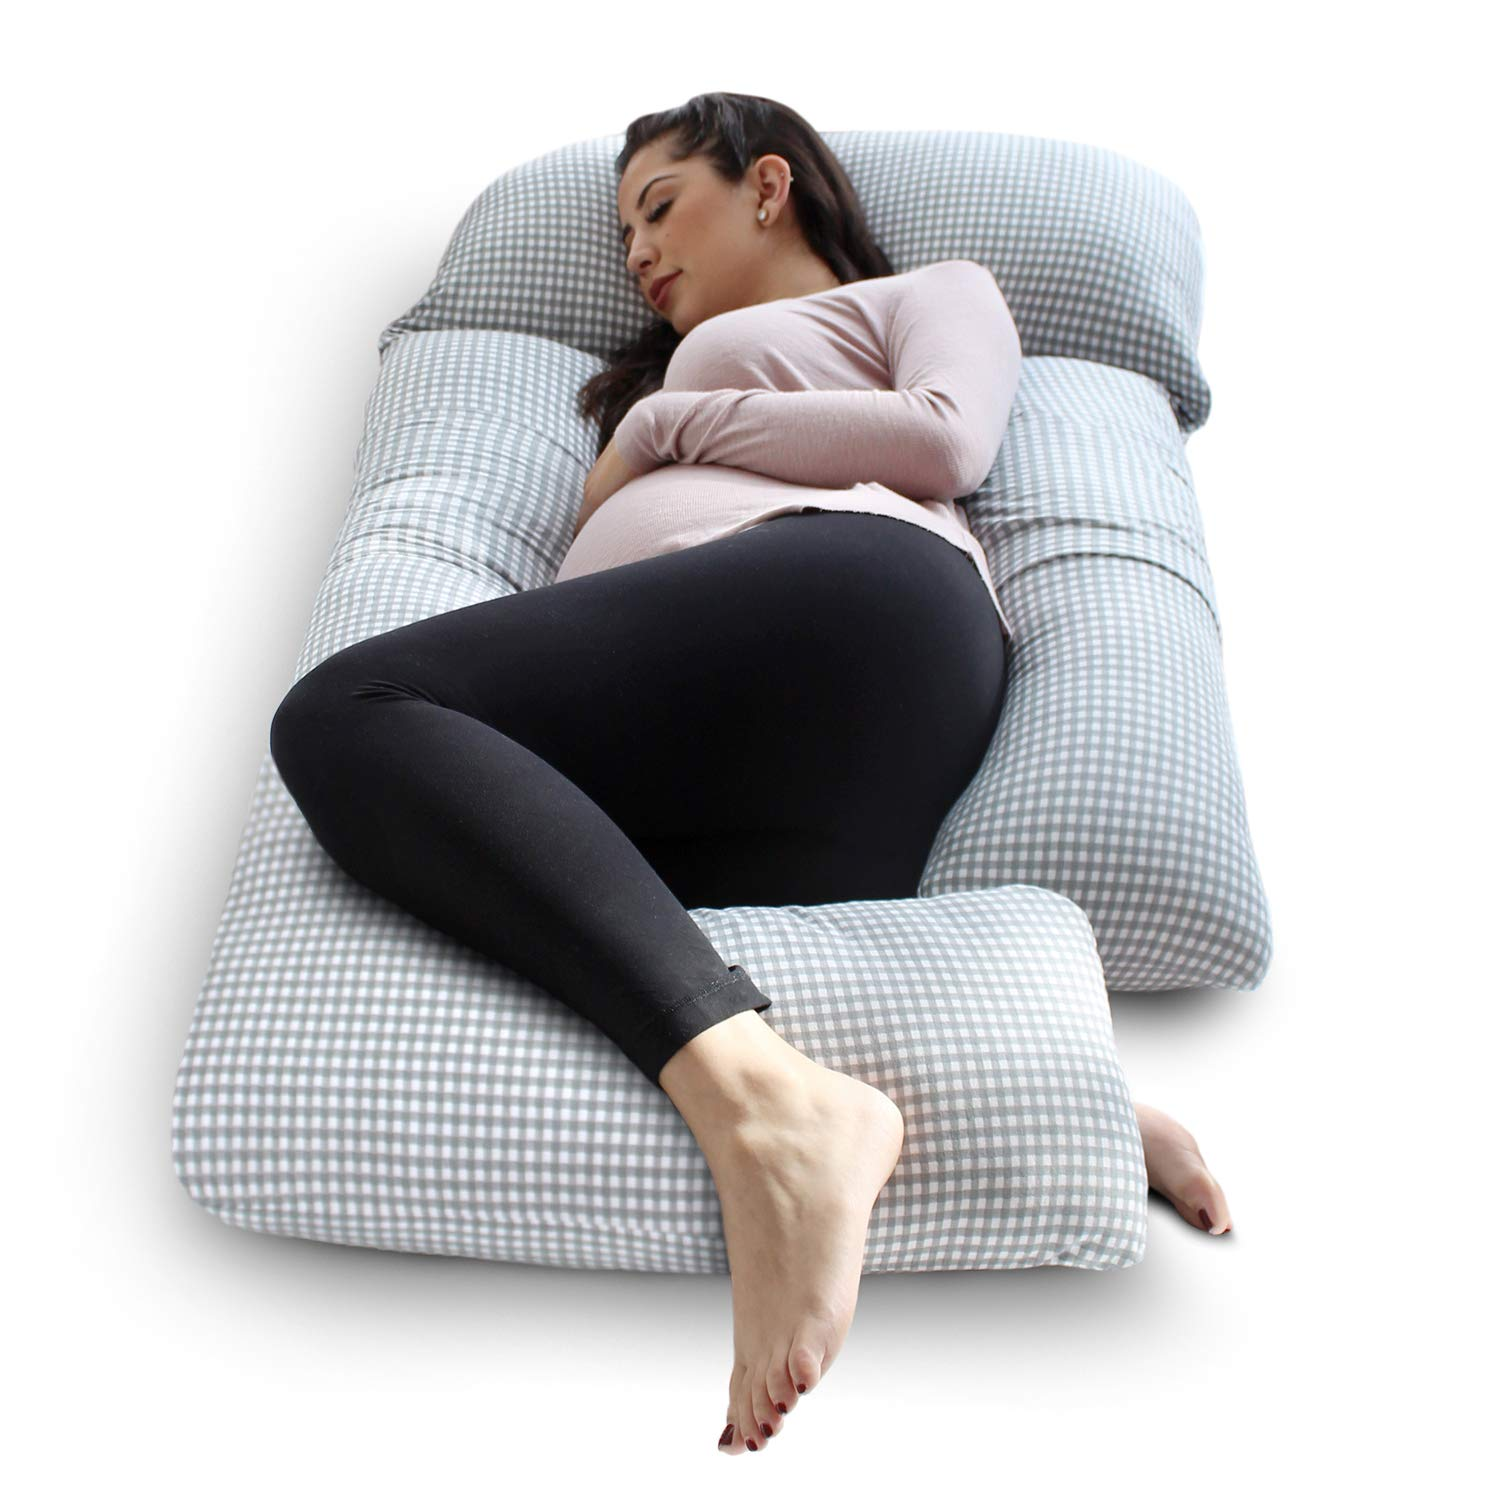 eklo SleepNook Pregnancy Pillow - 3 Piece Full Body Maternity Pillow with Super Soft Jersey Cover